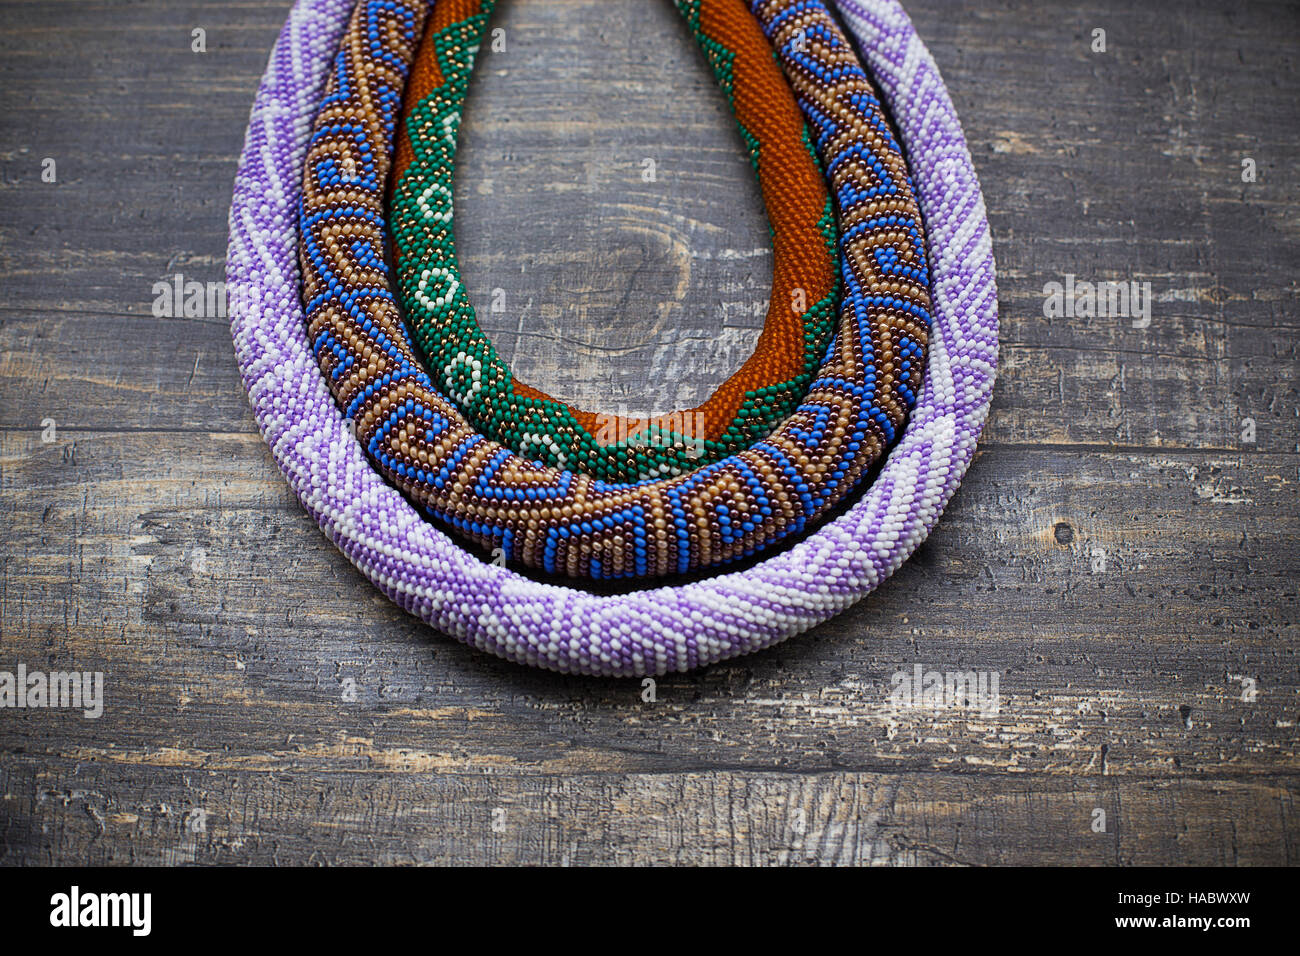 Three knitted beaded plaits on wooden background - Stock Image